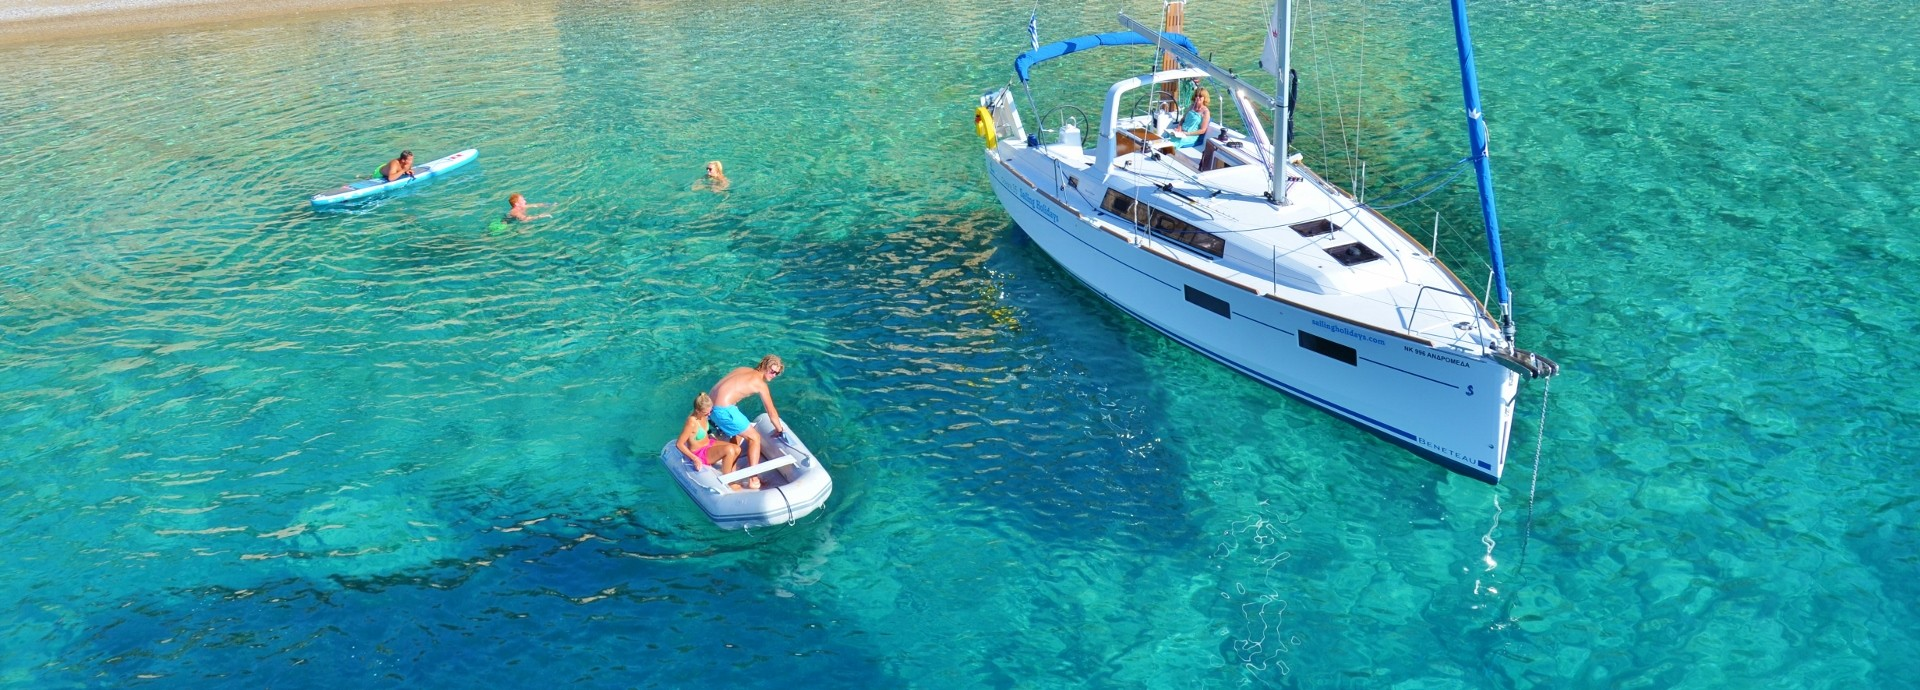 Beneteau 35 anchored in a bay on Kastus Island